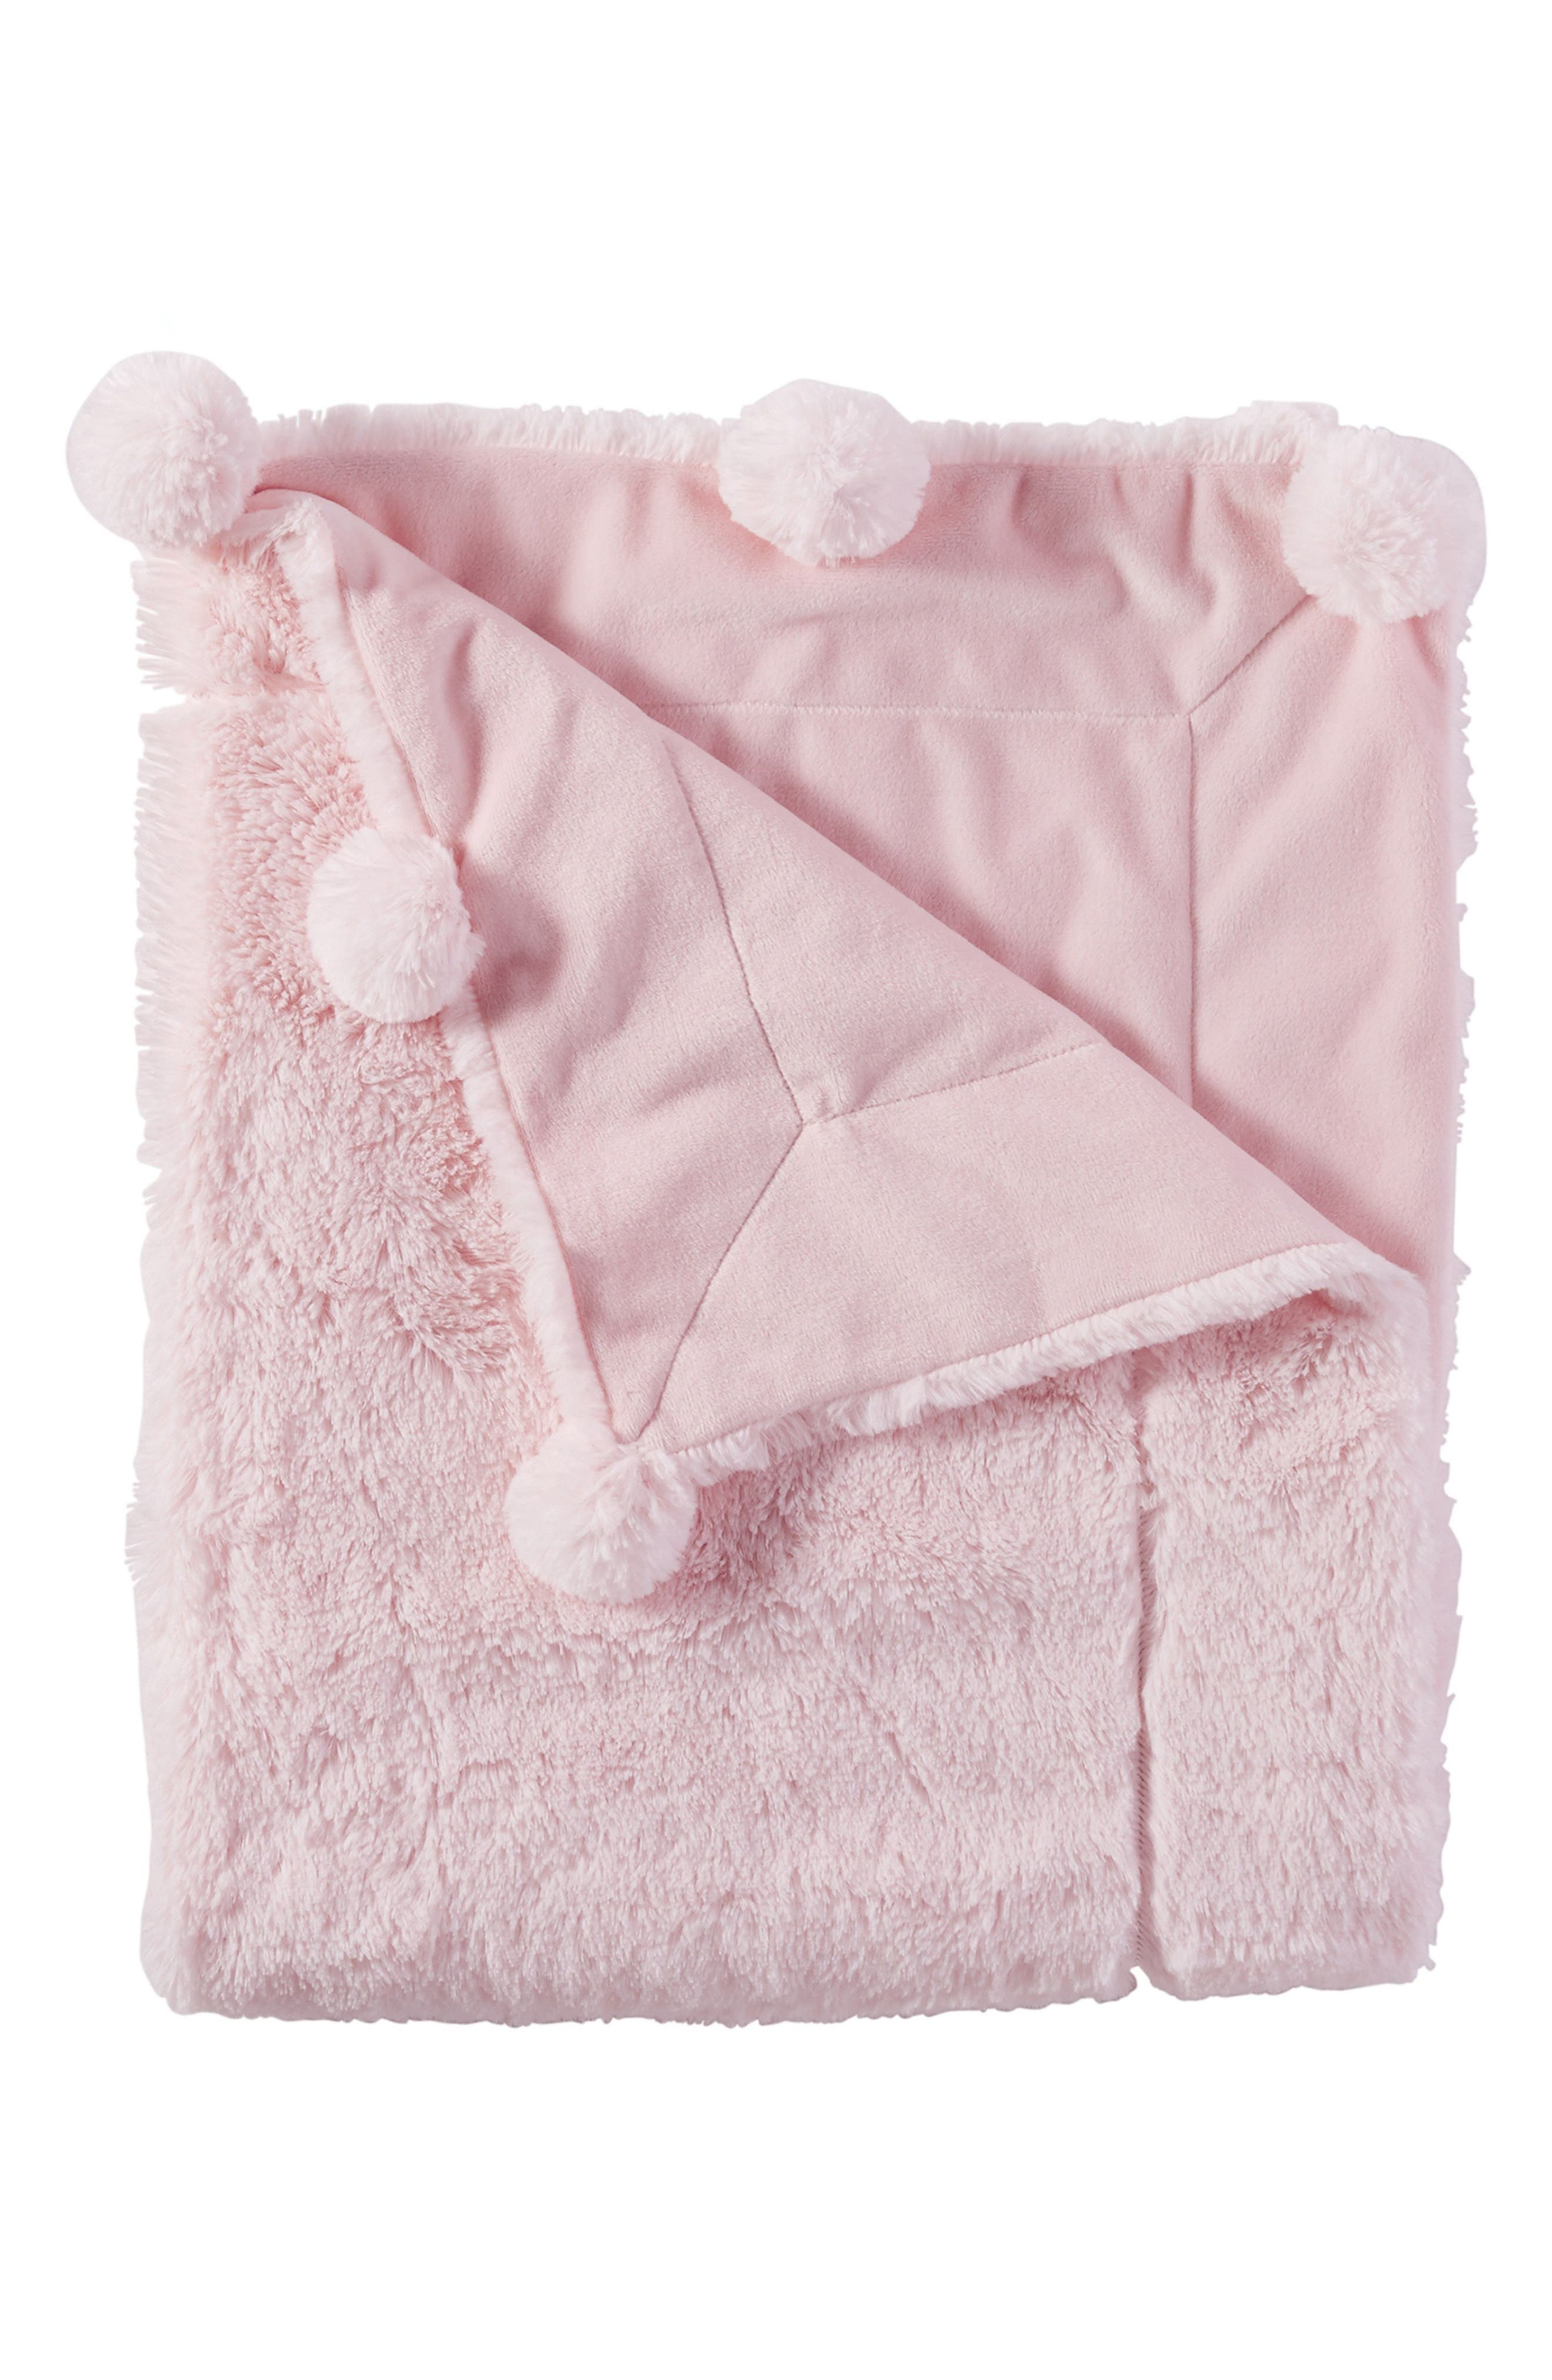 Pompom Receiving Blanket,                             Main thumbnail 1, color,                             PINK